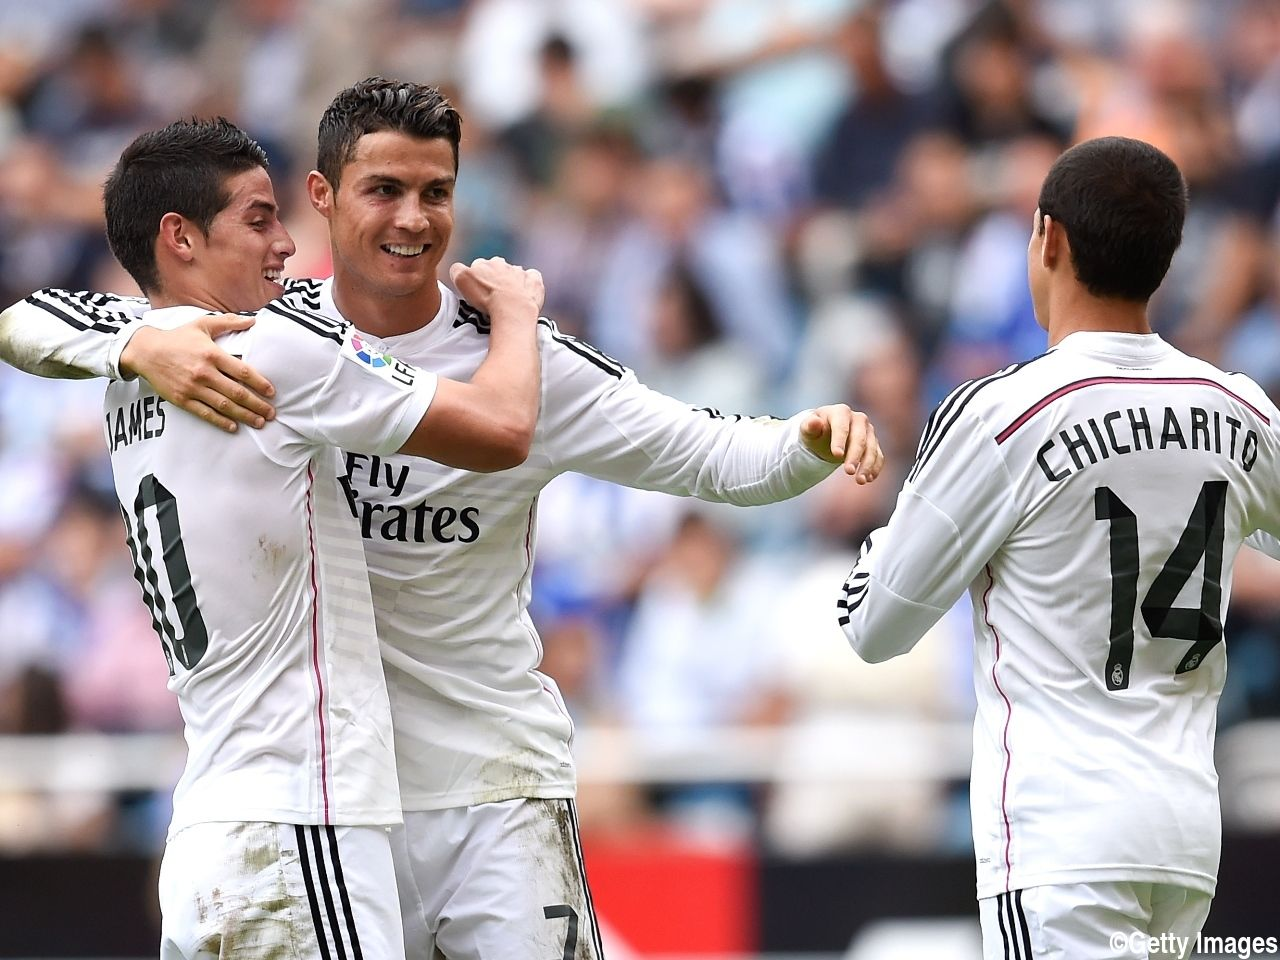 Real Madrid C.F. Cristiano Ronaldo, Chicharito, James